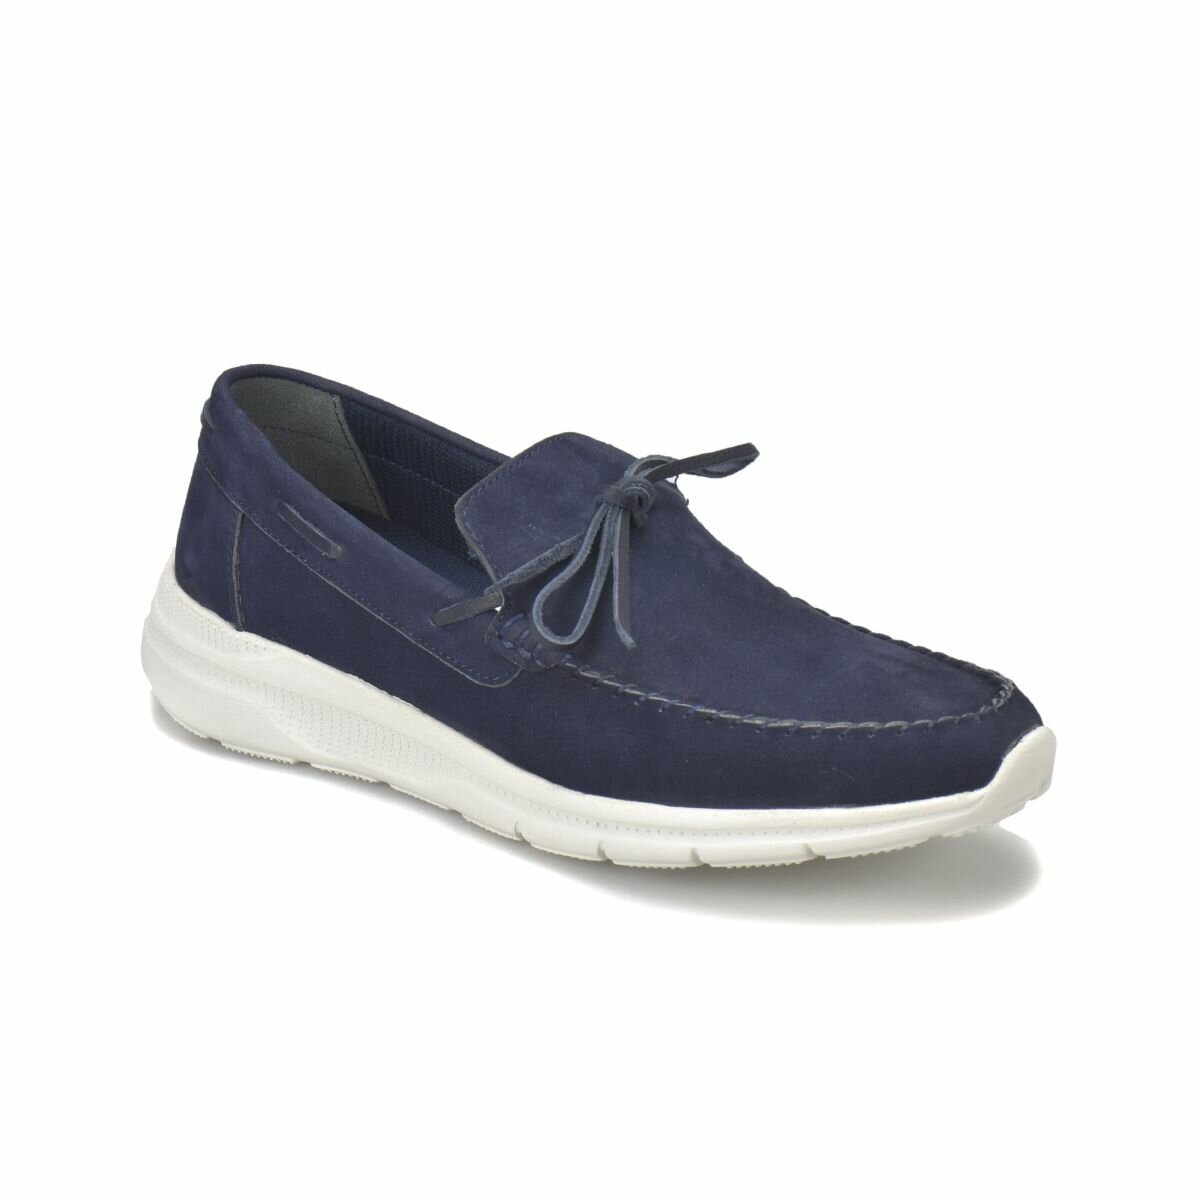 FLO 70423-3 Navy Blue Men 'S Modern Shoes Flogart